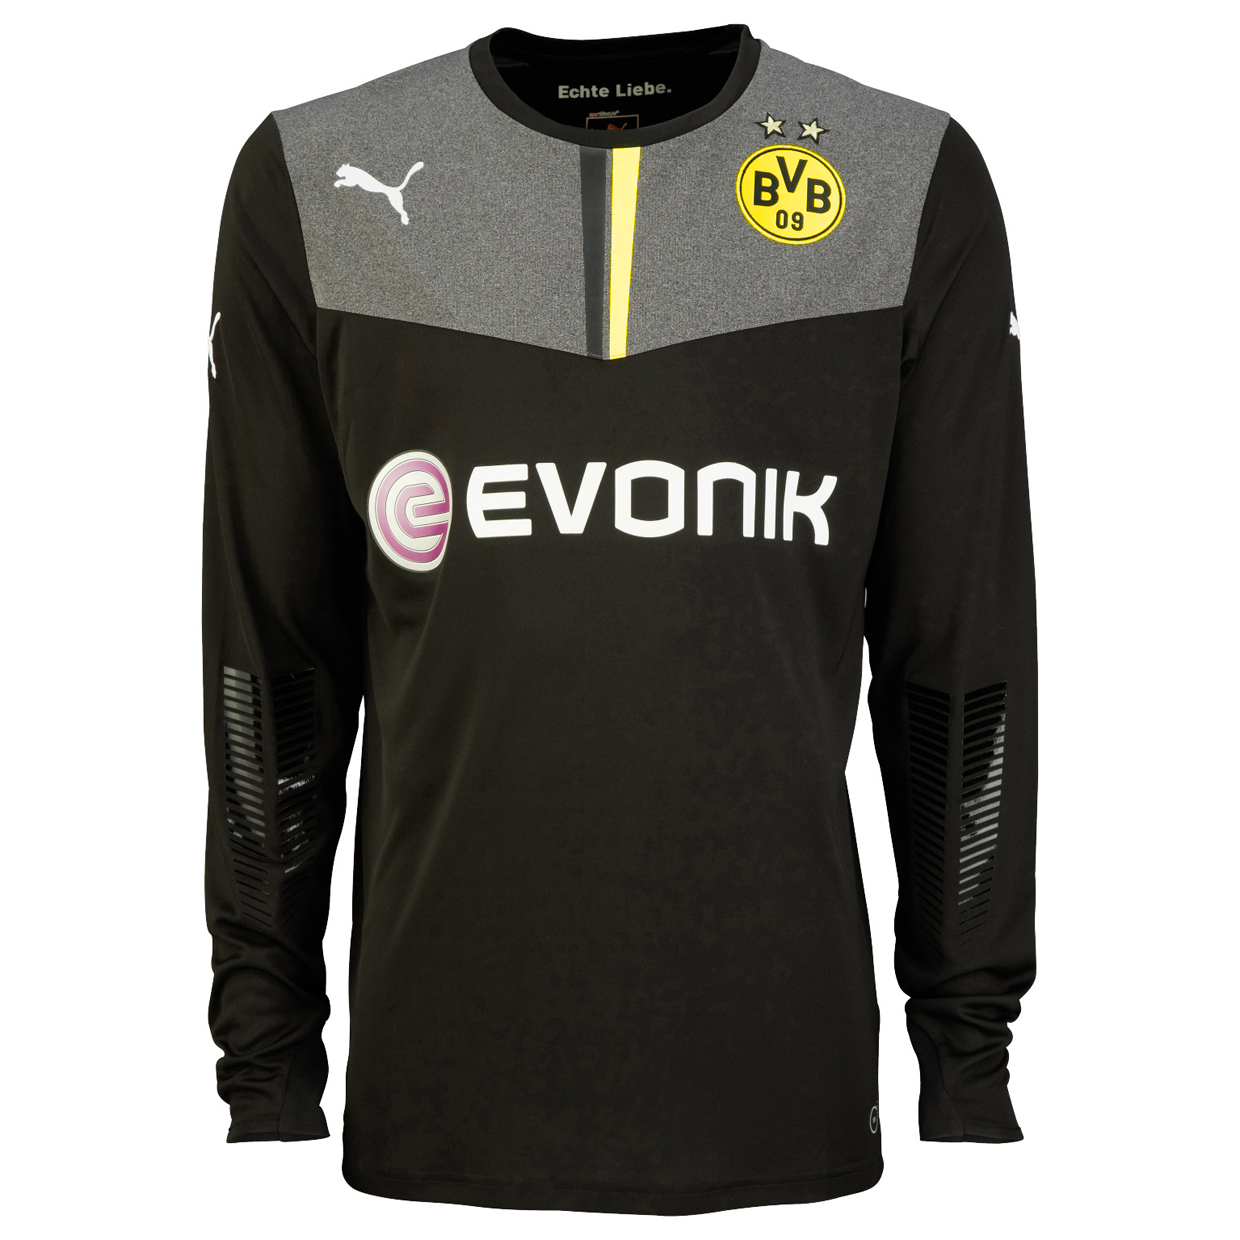 BVB Home Goalkeeper Shirt 2013/14